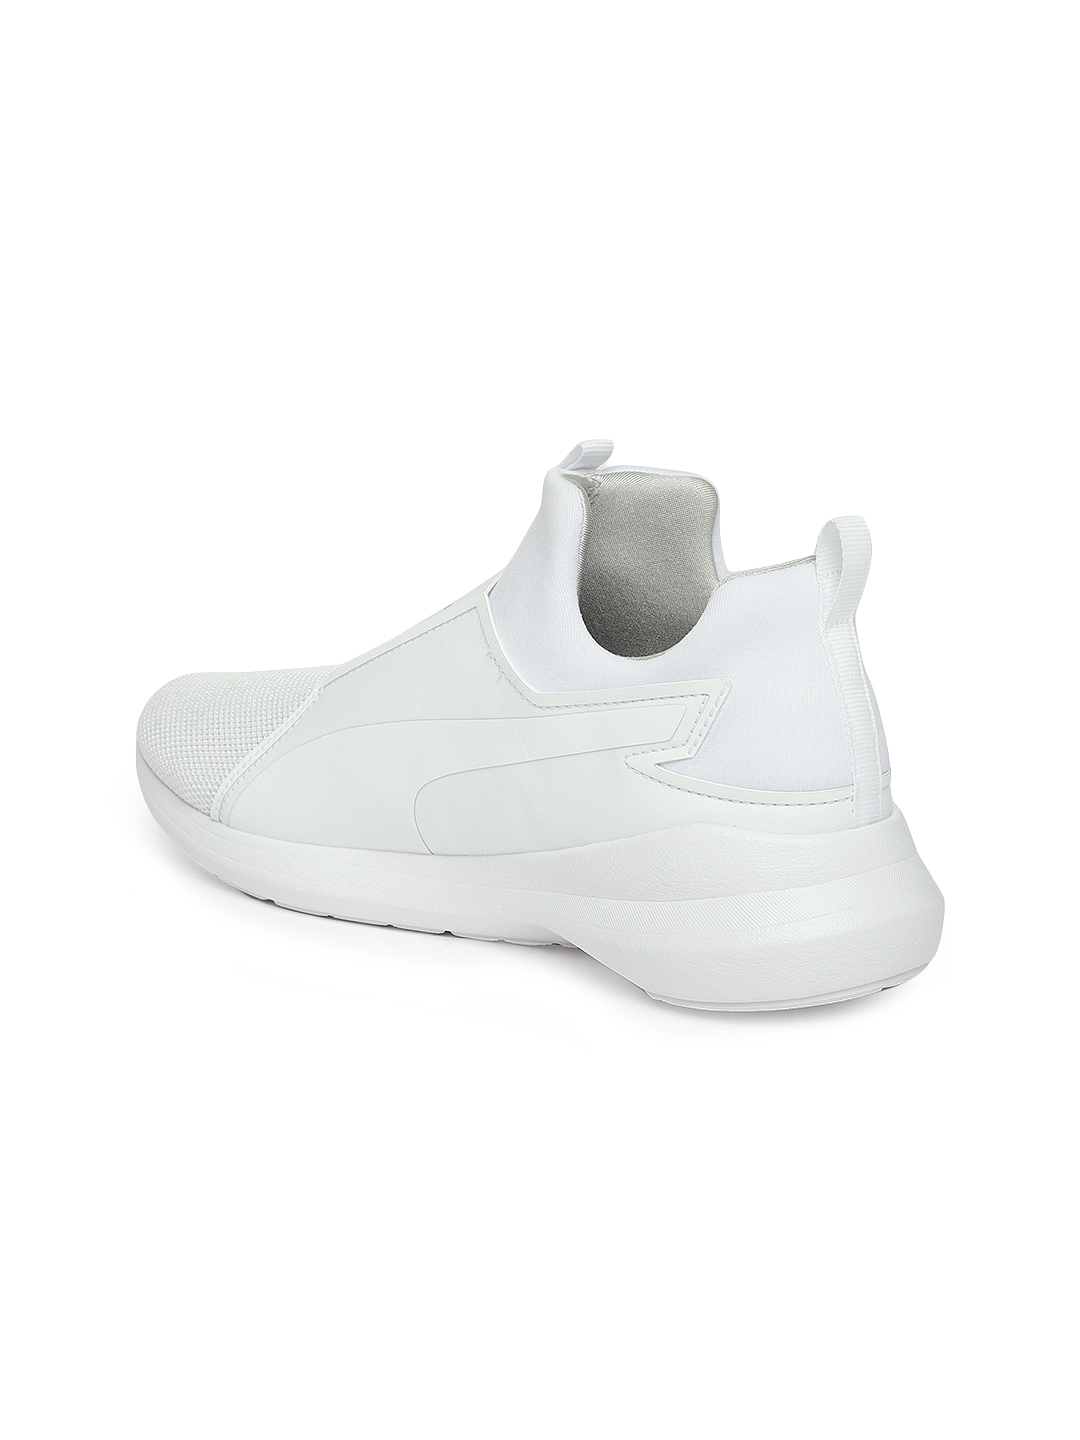 cc551f24d8a21c Buy Puma Women White Rebel Mid Core Slip On Sneakers - Casual Shoes ...